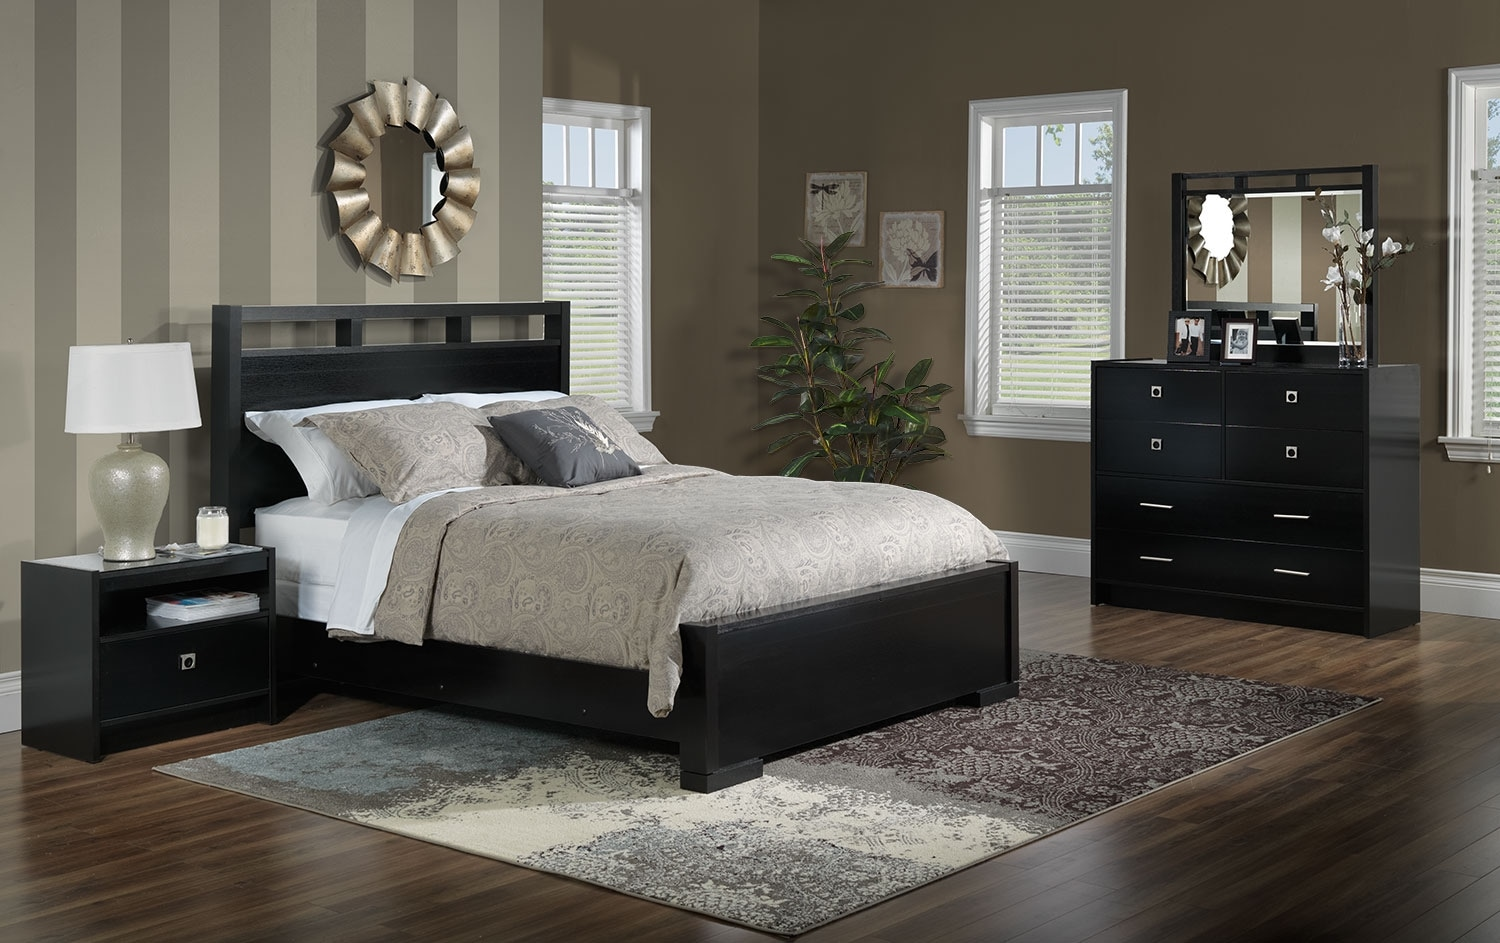 Altissa 5-Piece Queen Bedroom Set - Espresso